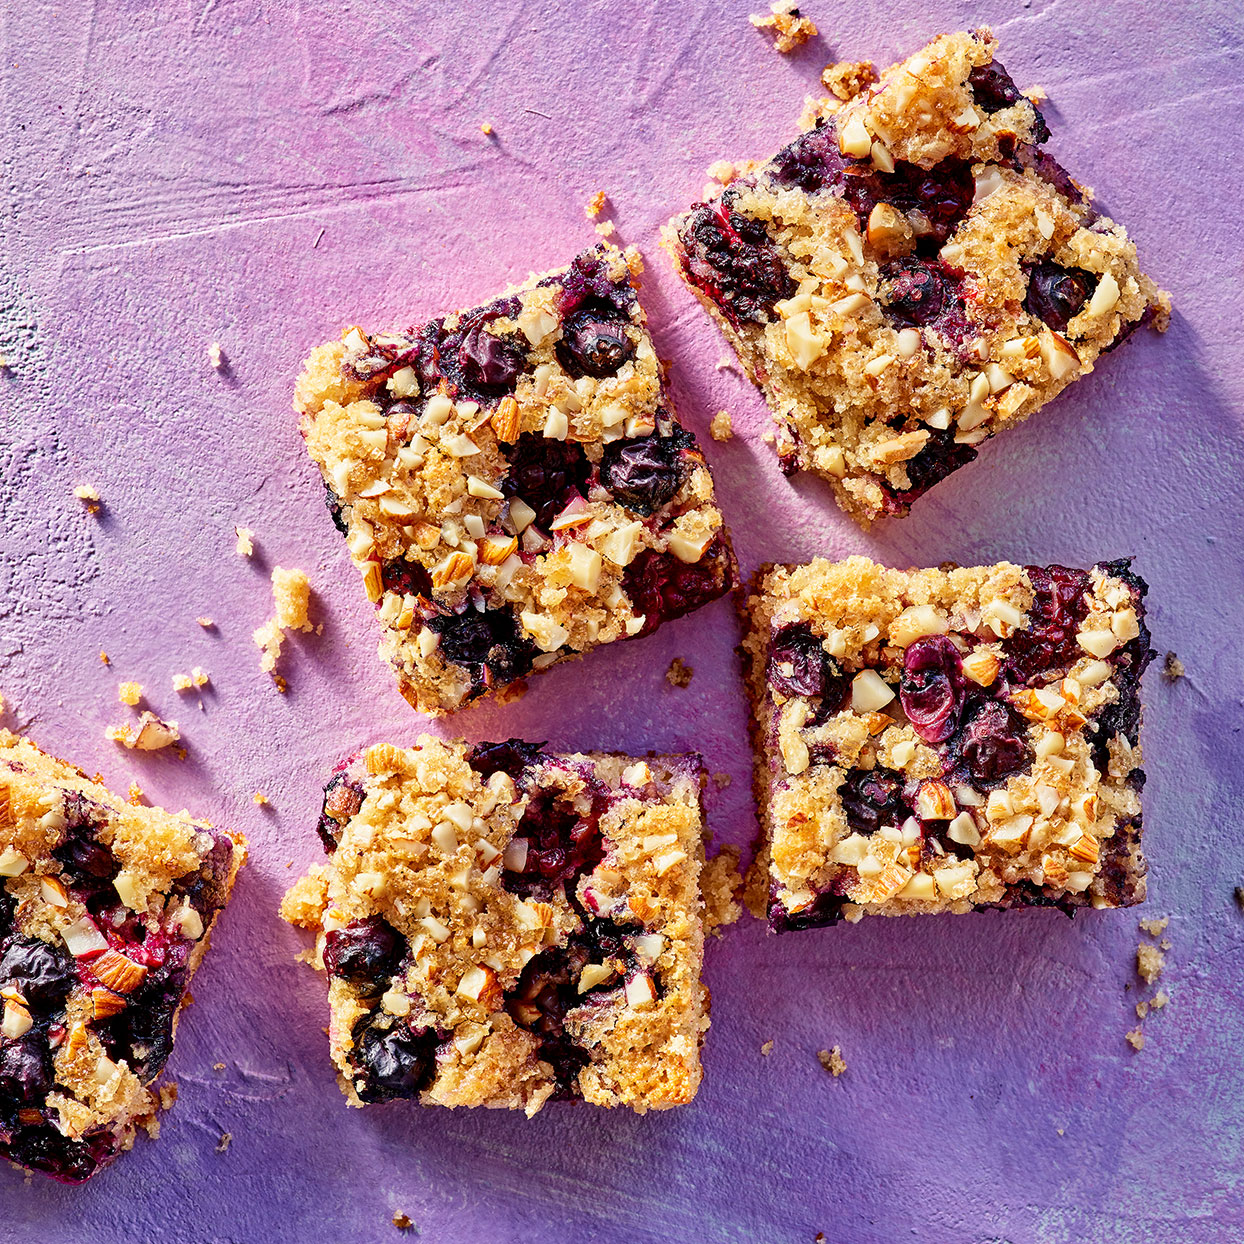 These incredibly easy-to-make cake bars get a touch of sparkle and crunch from a sprinkle of turbinado sugar over the top. If you use frozen berries, thaw and pat them dry before topping the batter with them. Source: EatingWell Magazine, April 2020